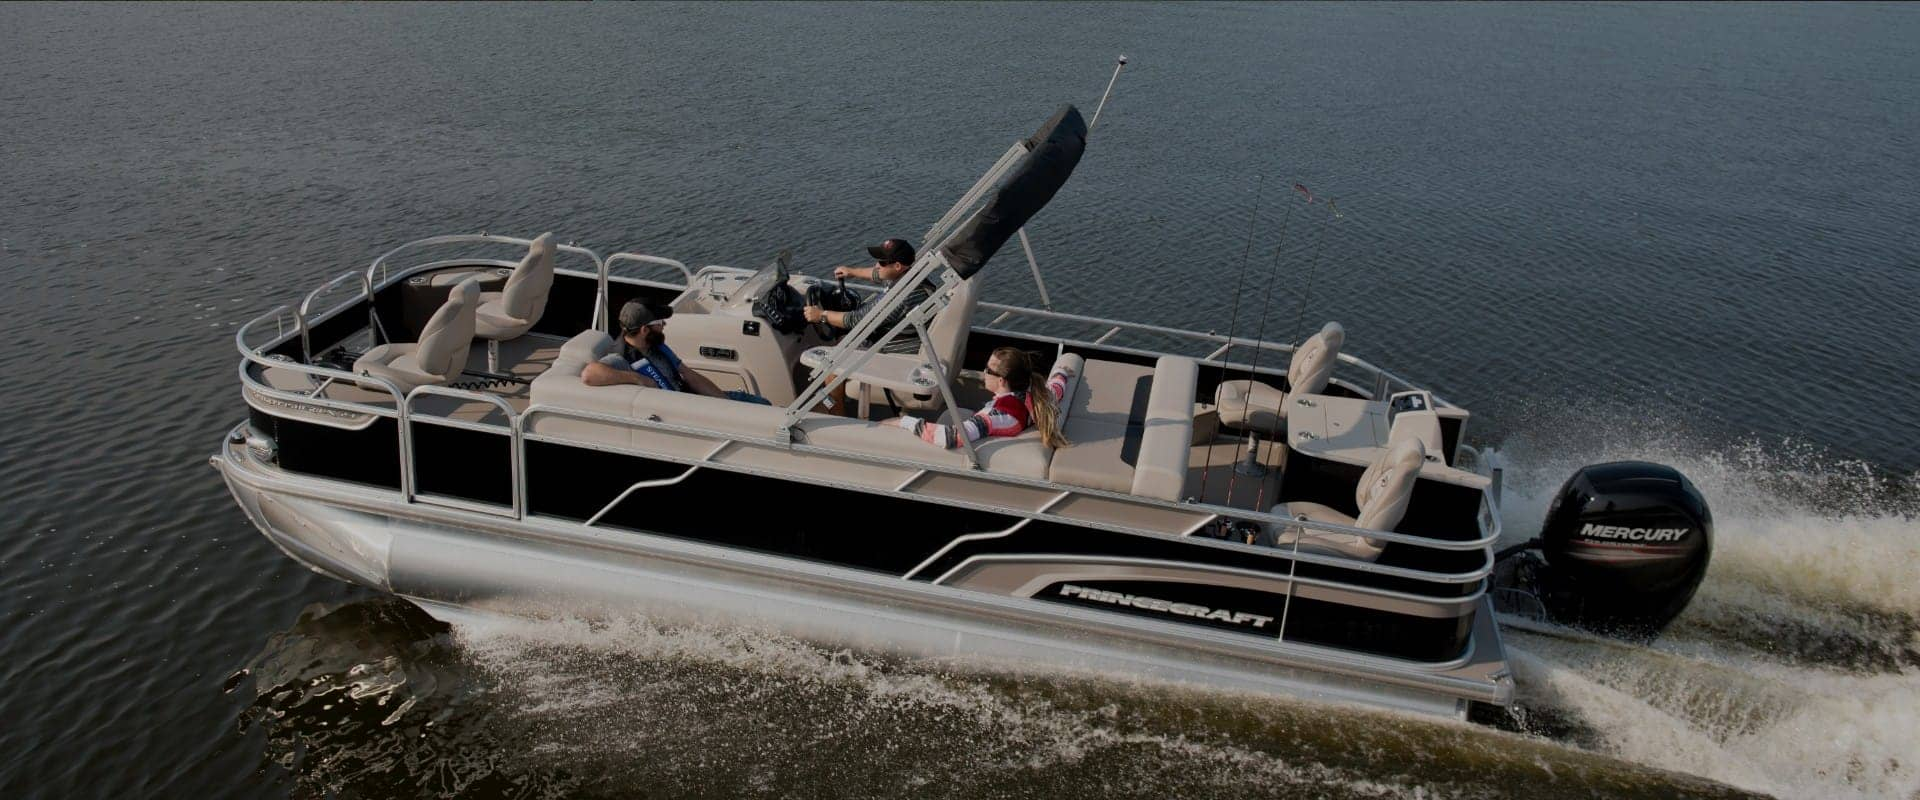 long dealers pontoon nc sale htm bentley inventory cruise in for marina catawba island